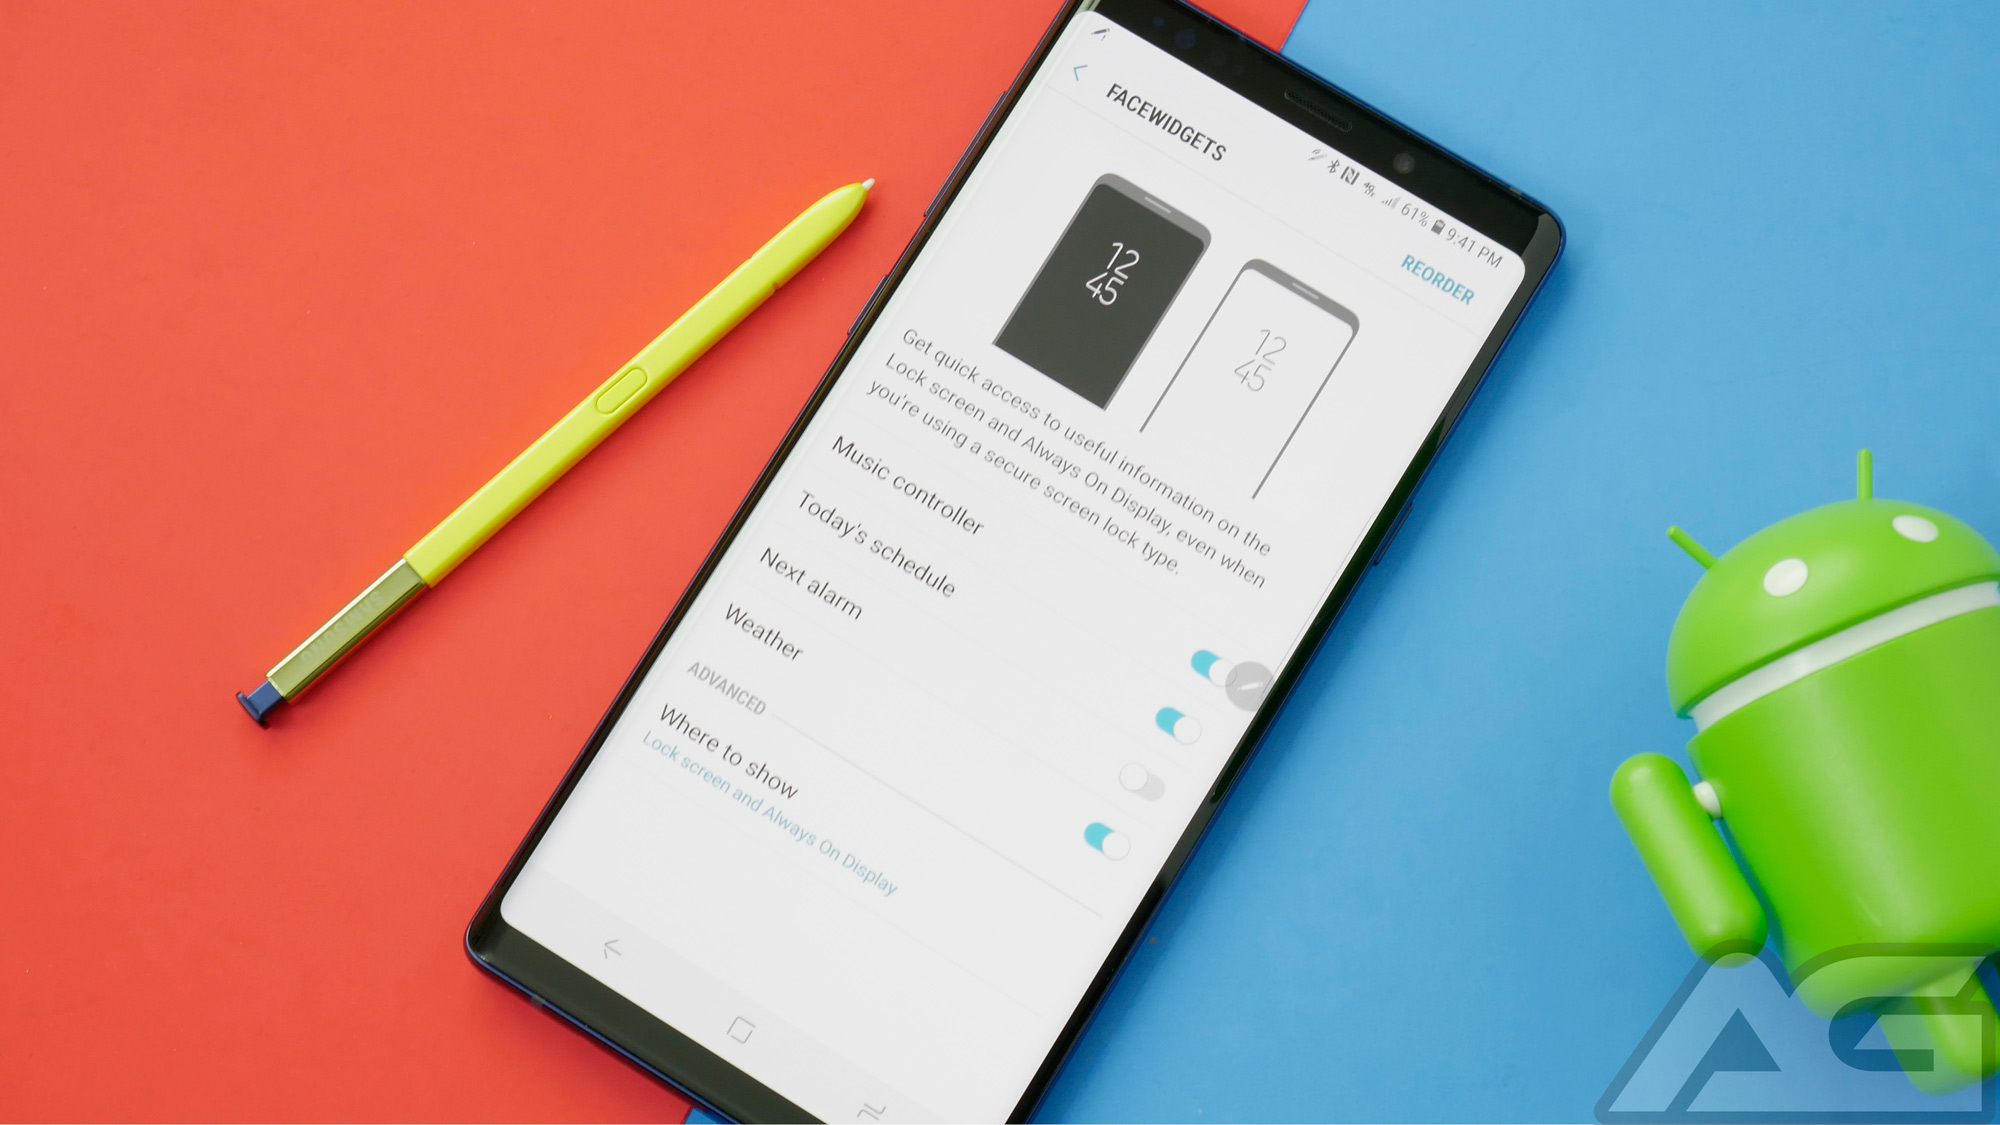 Samsung Galaxy Note 9 Review: A great phone that comes at a